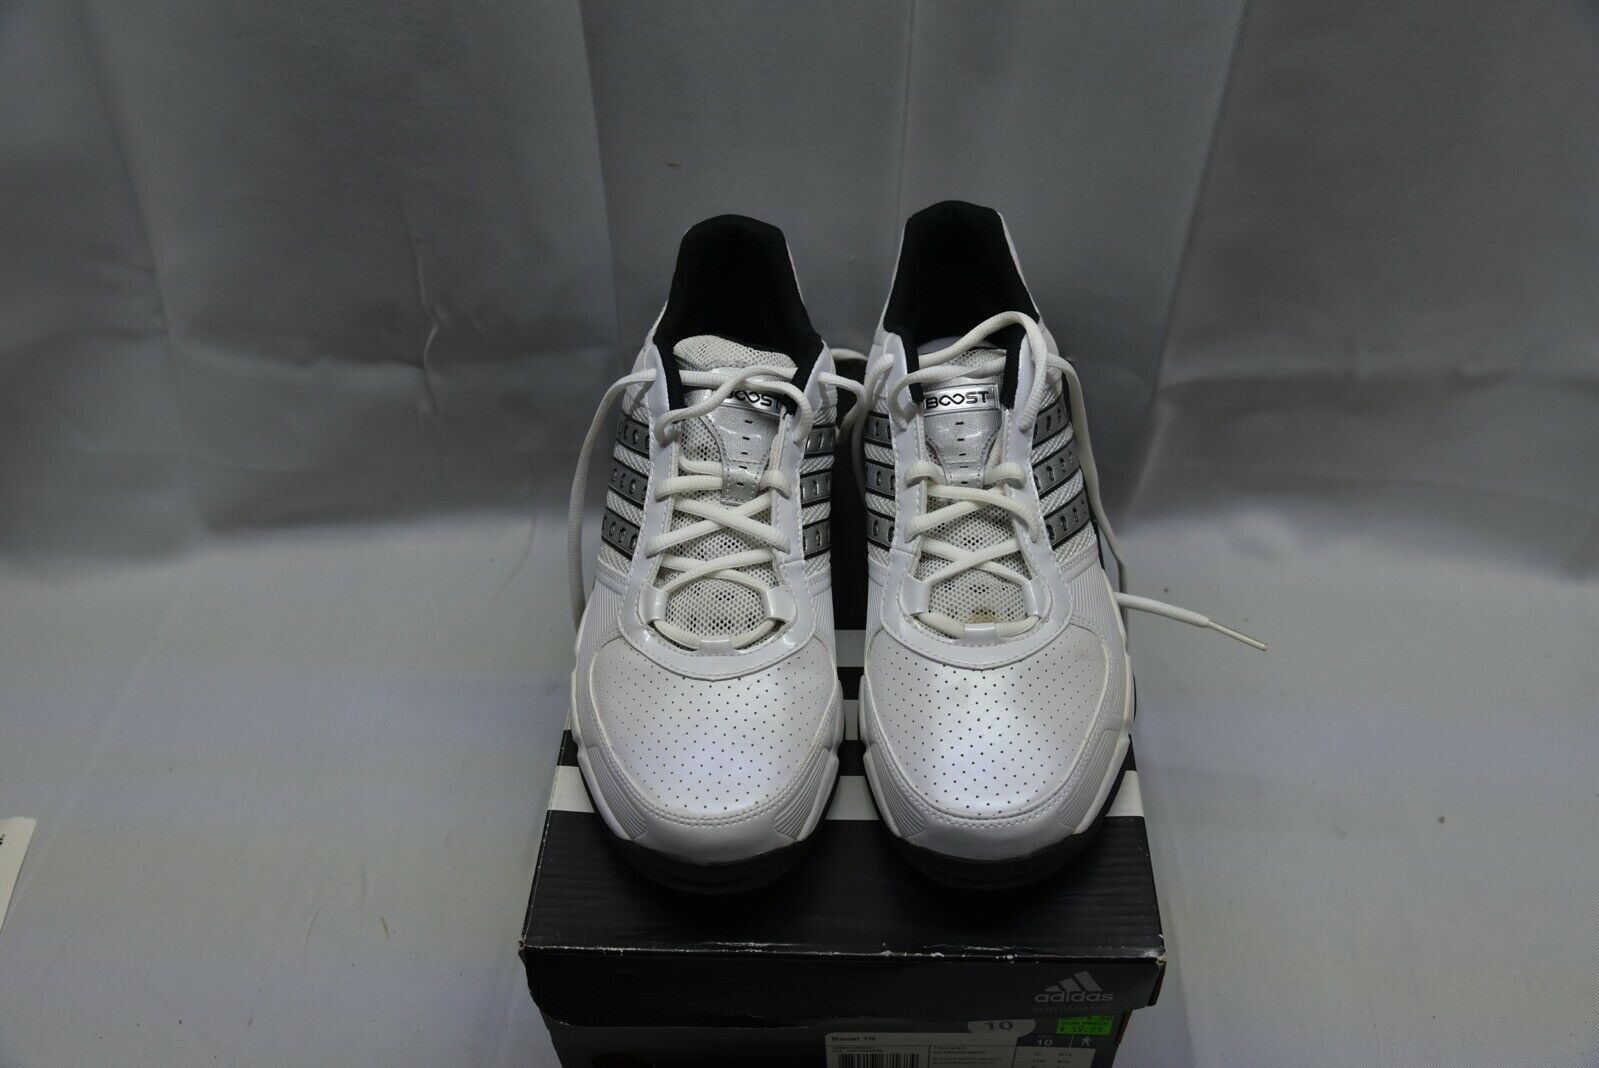 Adidas Boost TR - G07845 Training shoes - Size 10 - BK - K